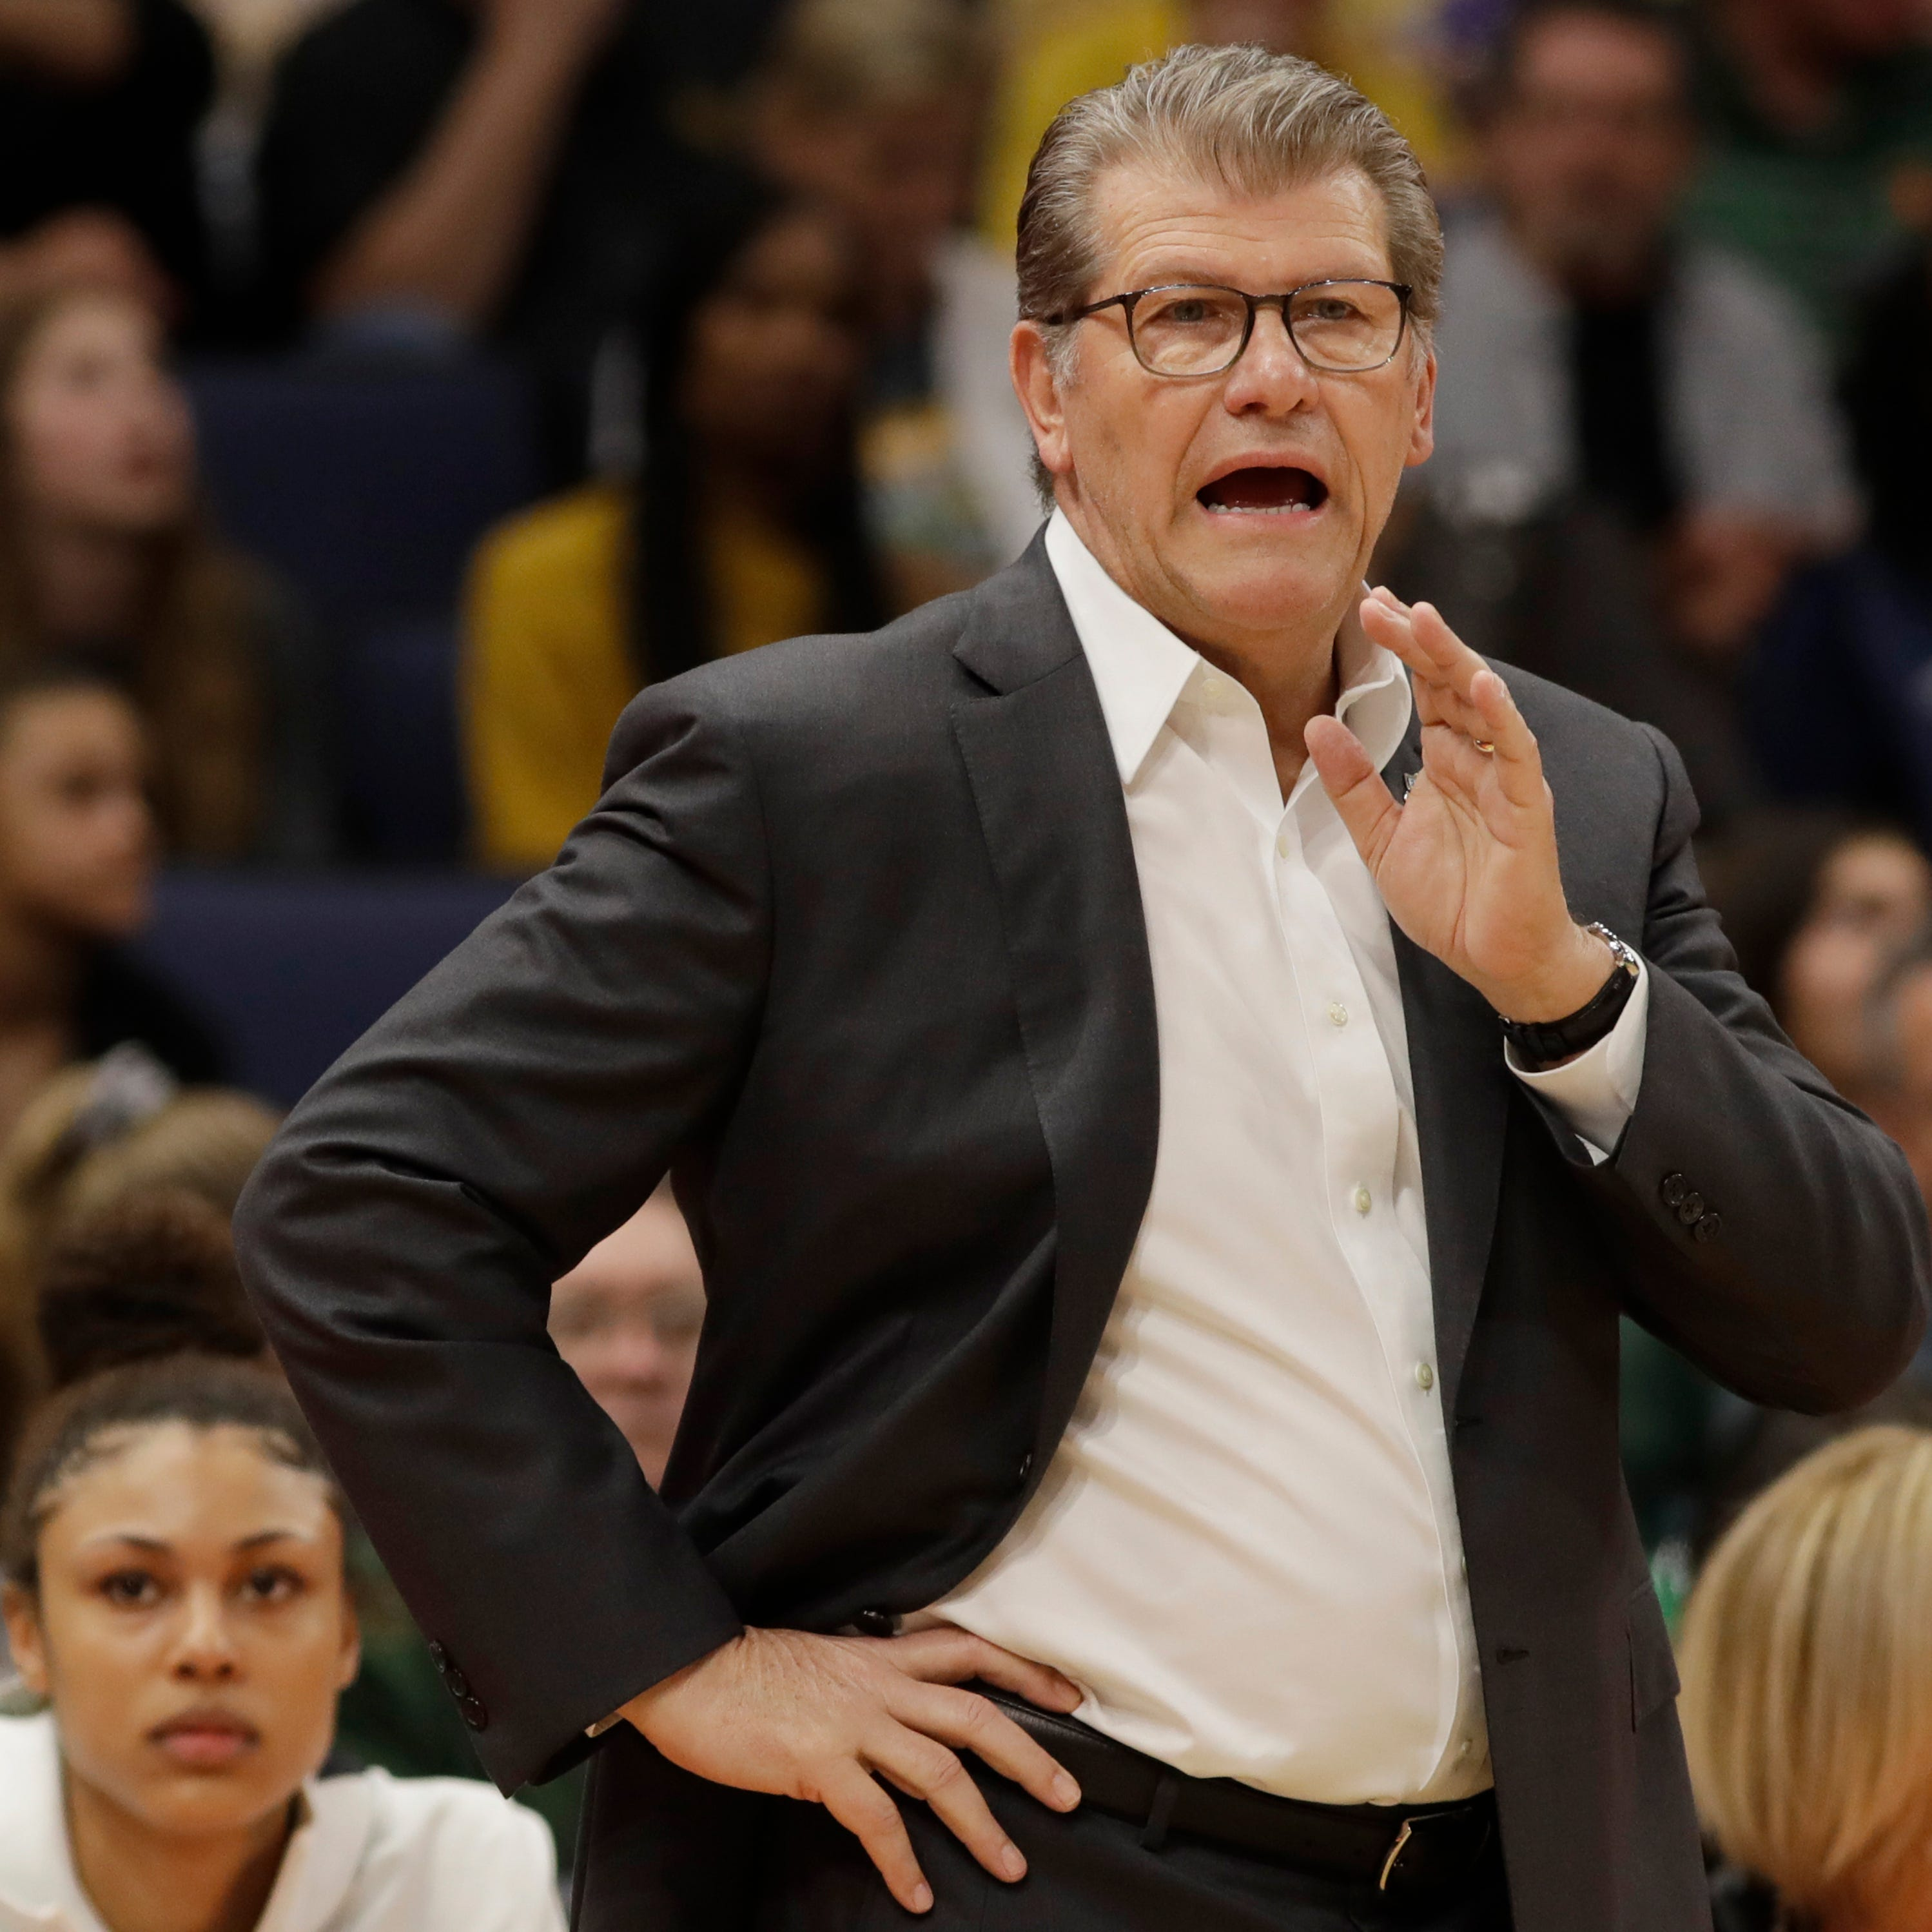 Geno Auriemma says Lady Vols are 'any other school now,' doesn't see UConn-UT as big deal